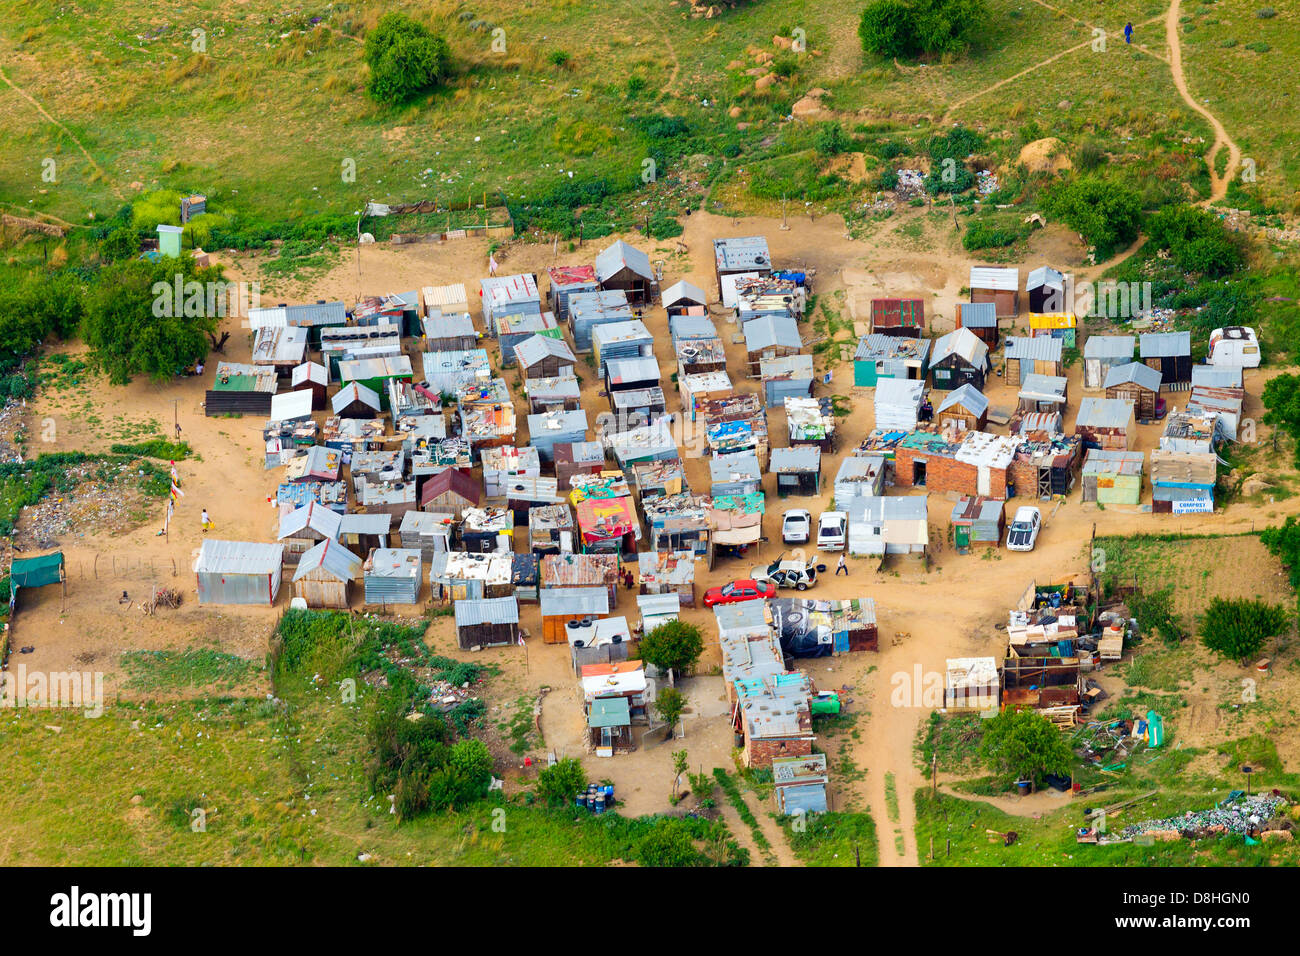 Aerial view of an informal settlement Johannesburg South Africa - Stock Image